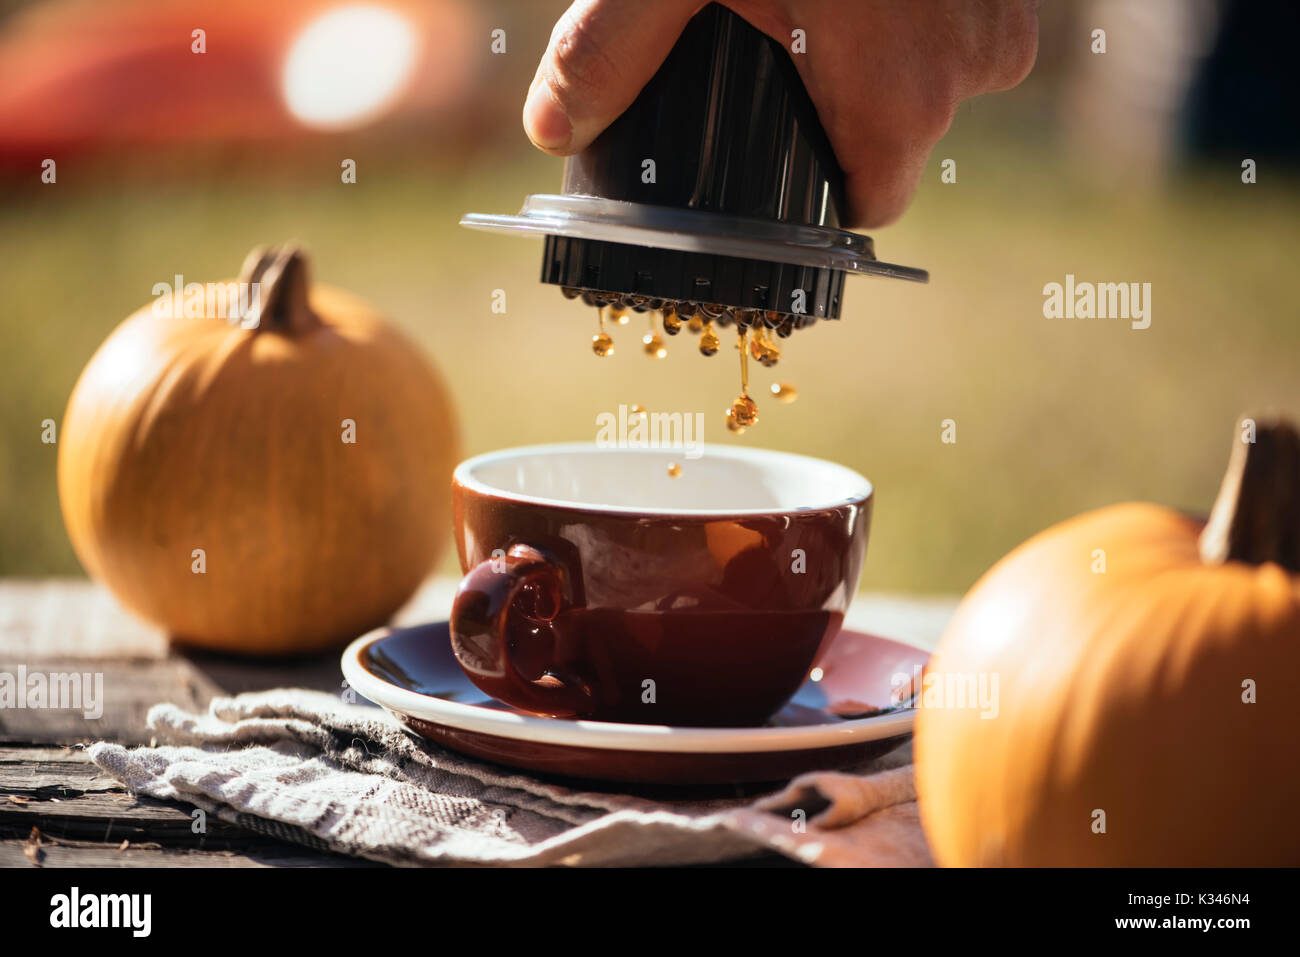 Man brewing filter coffee outdoor, at the autumn coffee picnic, on the old damaged wooden table background. Coffee drips captured in motion in the pro - Stock Image